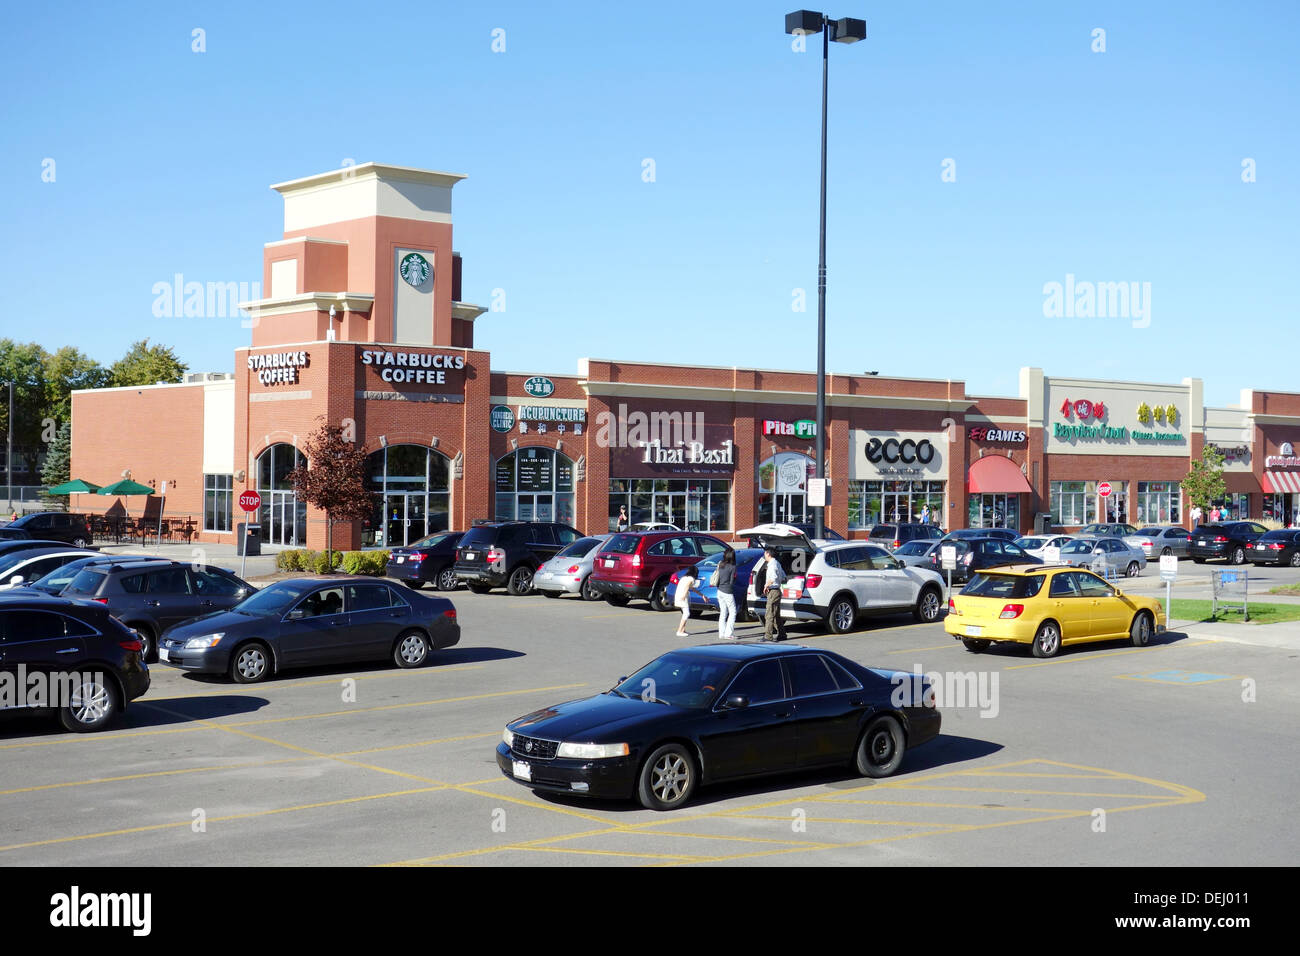 Strip mall parking lot outside Toronto, Canada - Stock Image